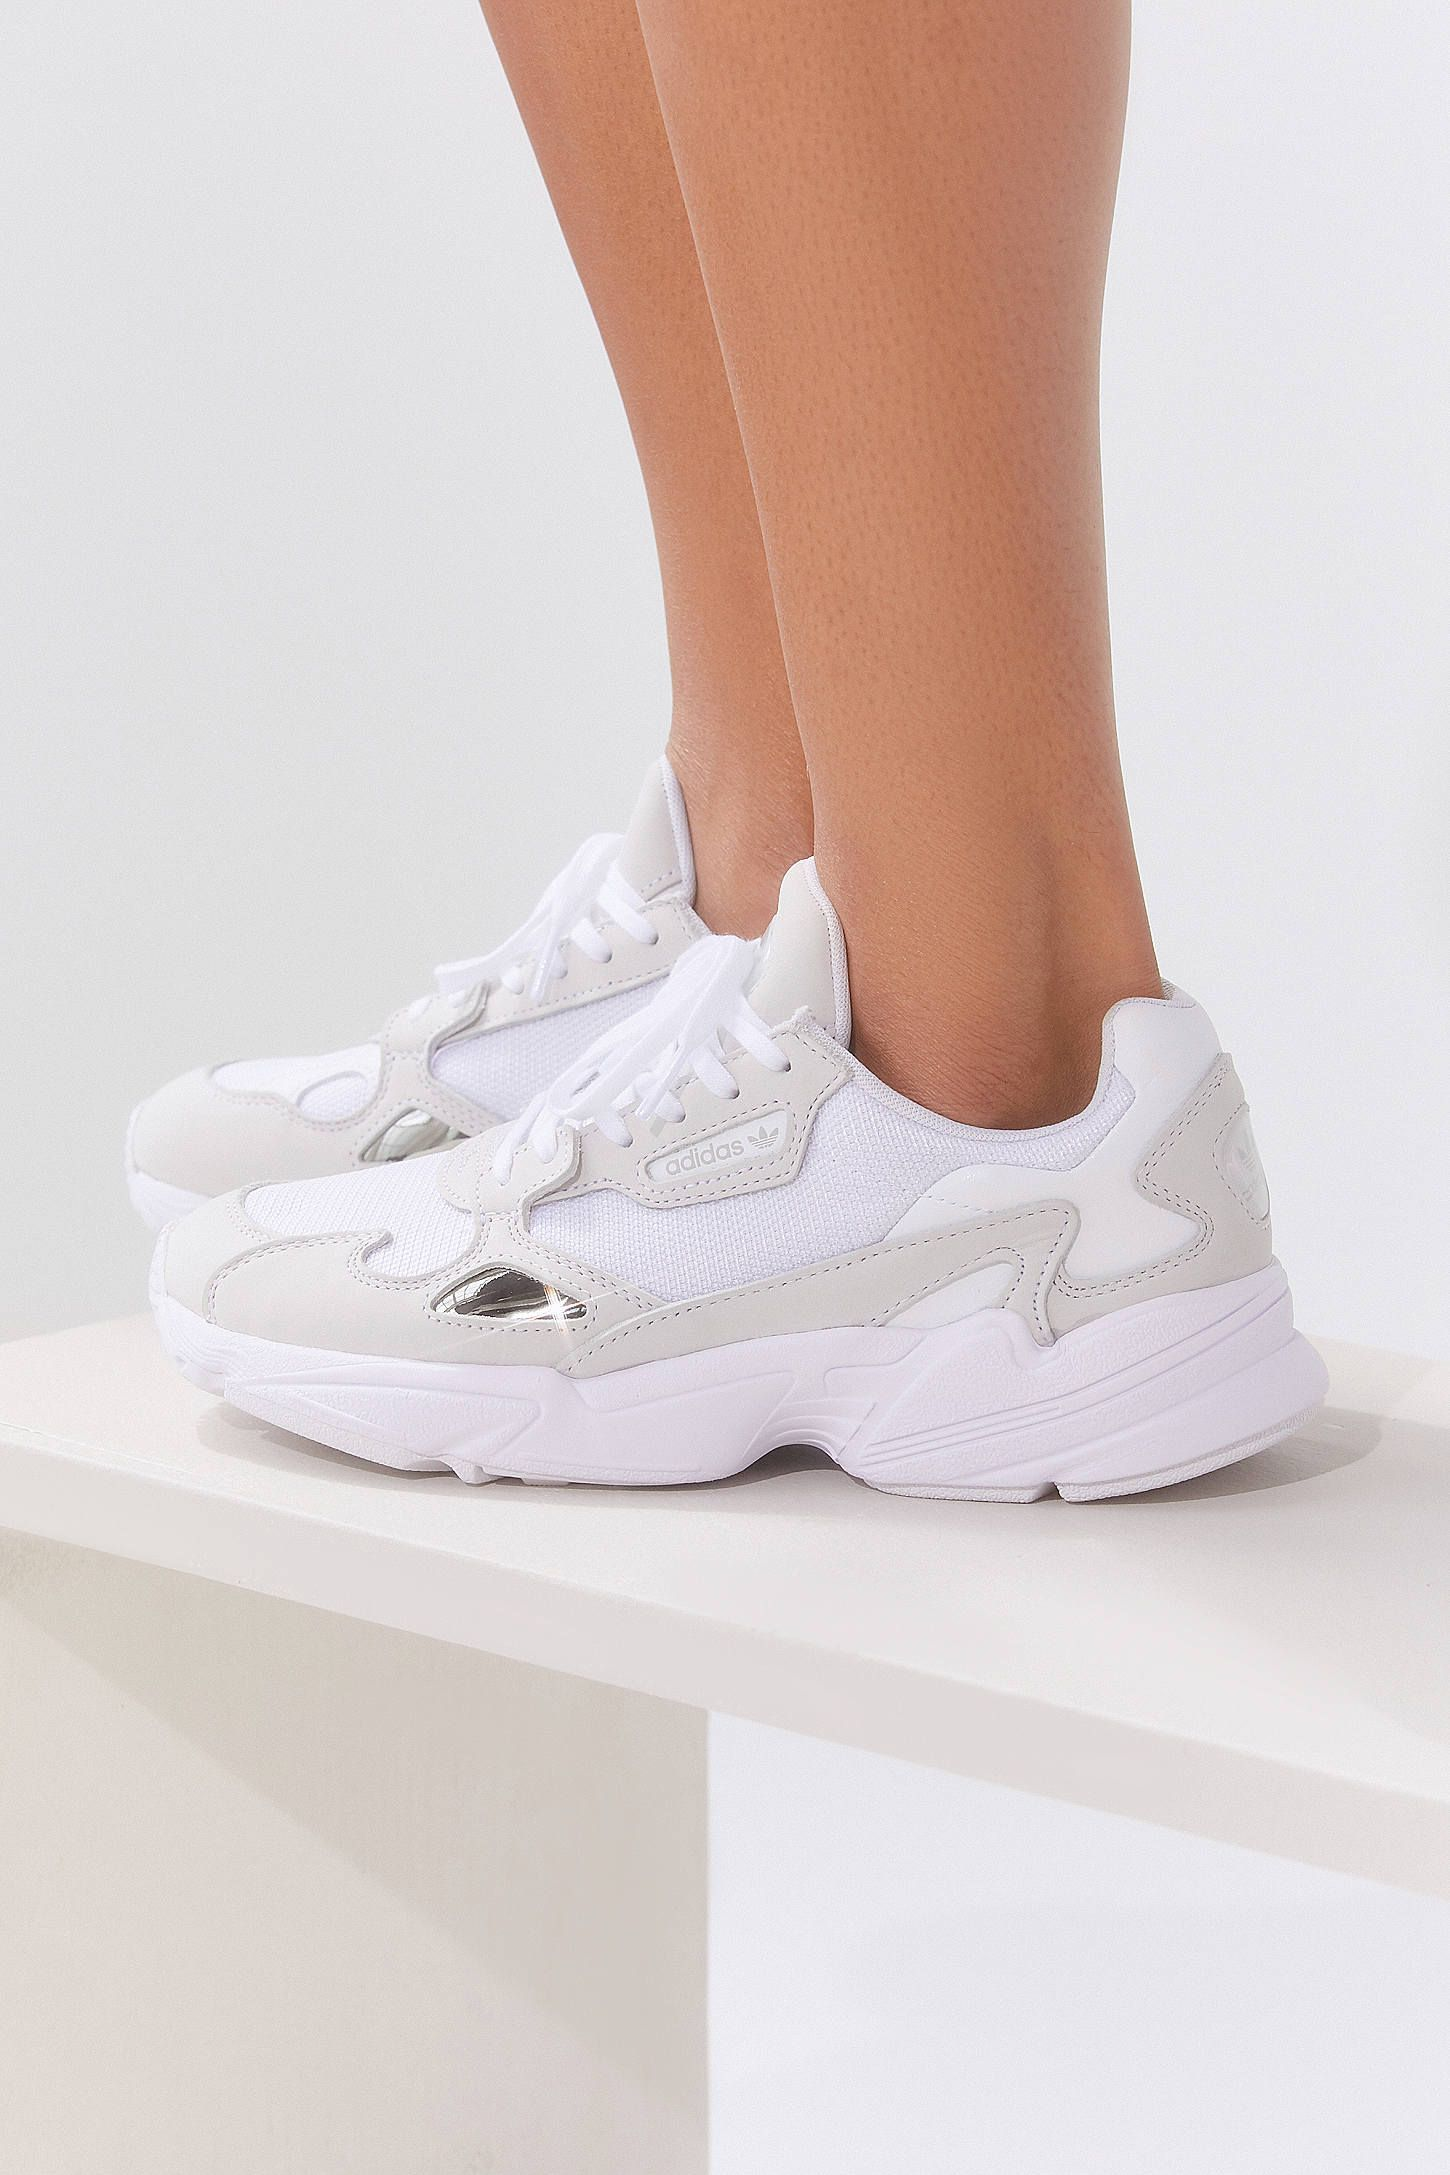 Adidas Falcon, Dad Sneakers, The Ivory Diary   Mode, Mode